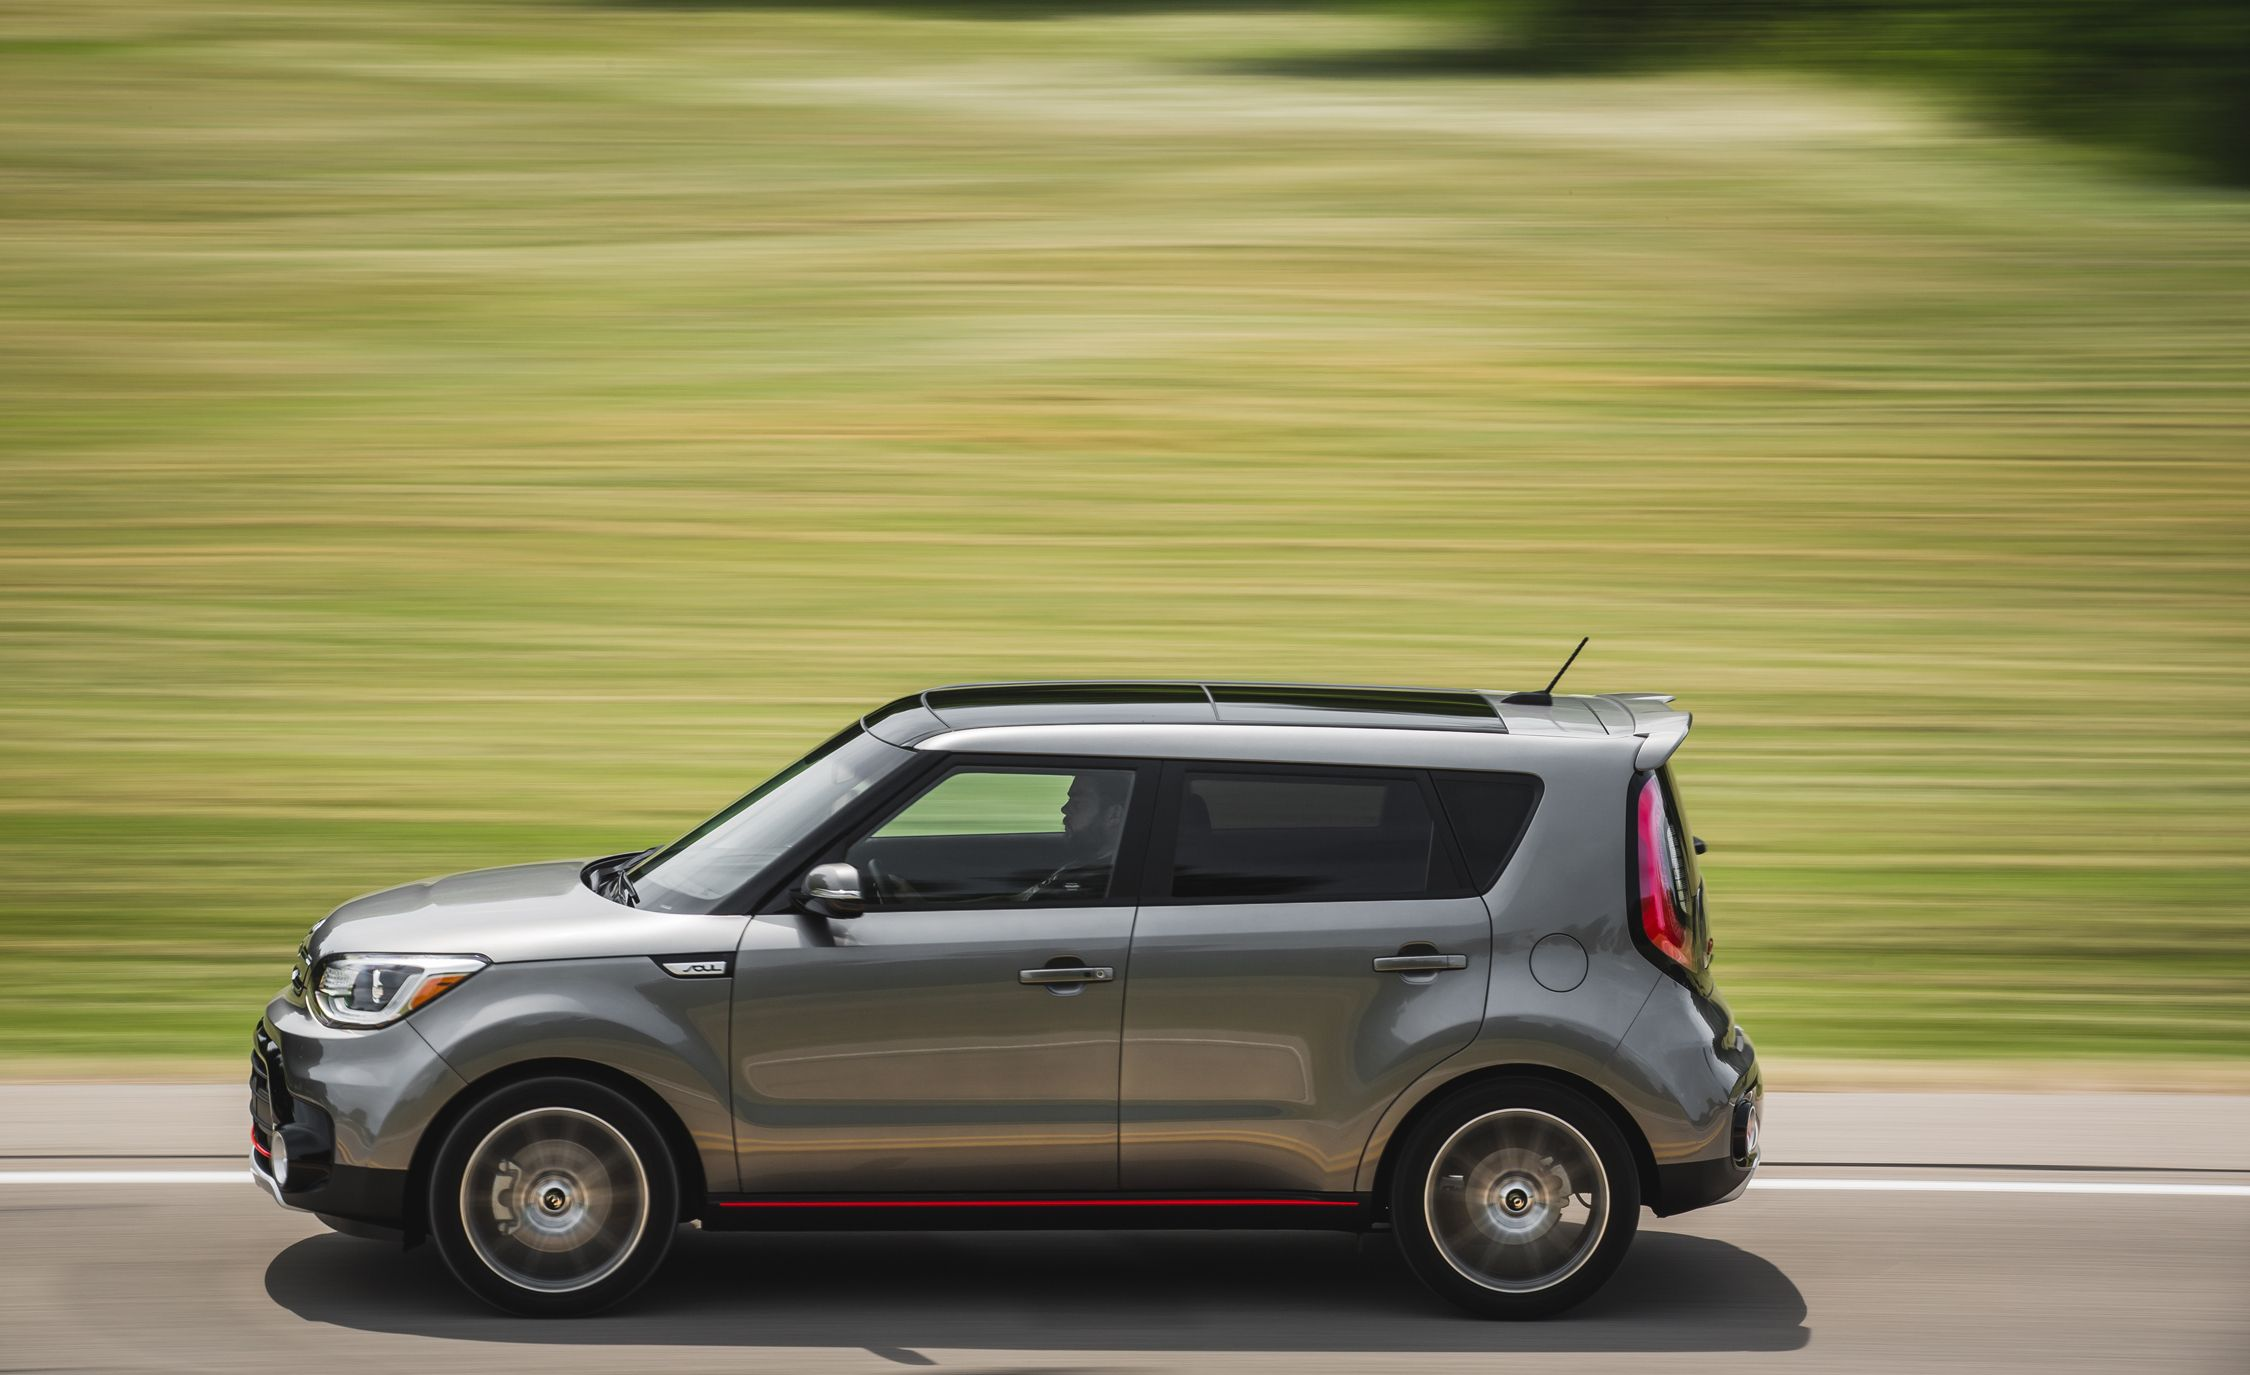 Kia Soul: Record your key number